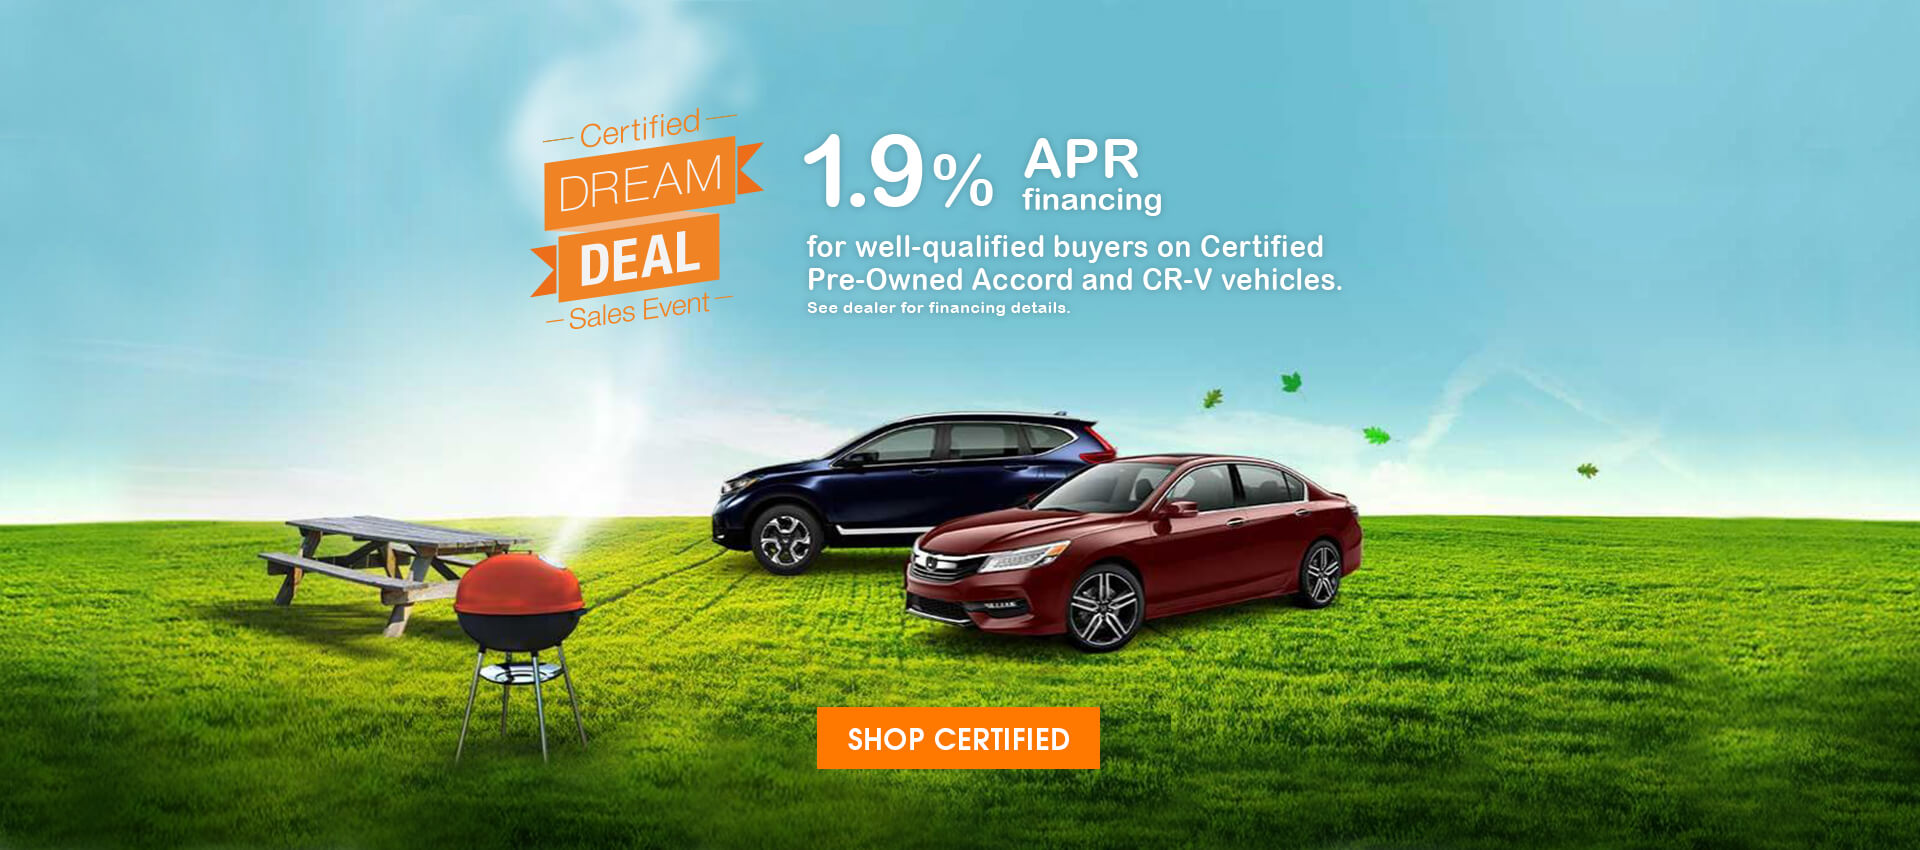 Specials On Honda Vehicles